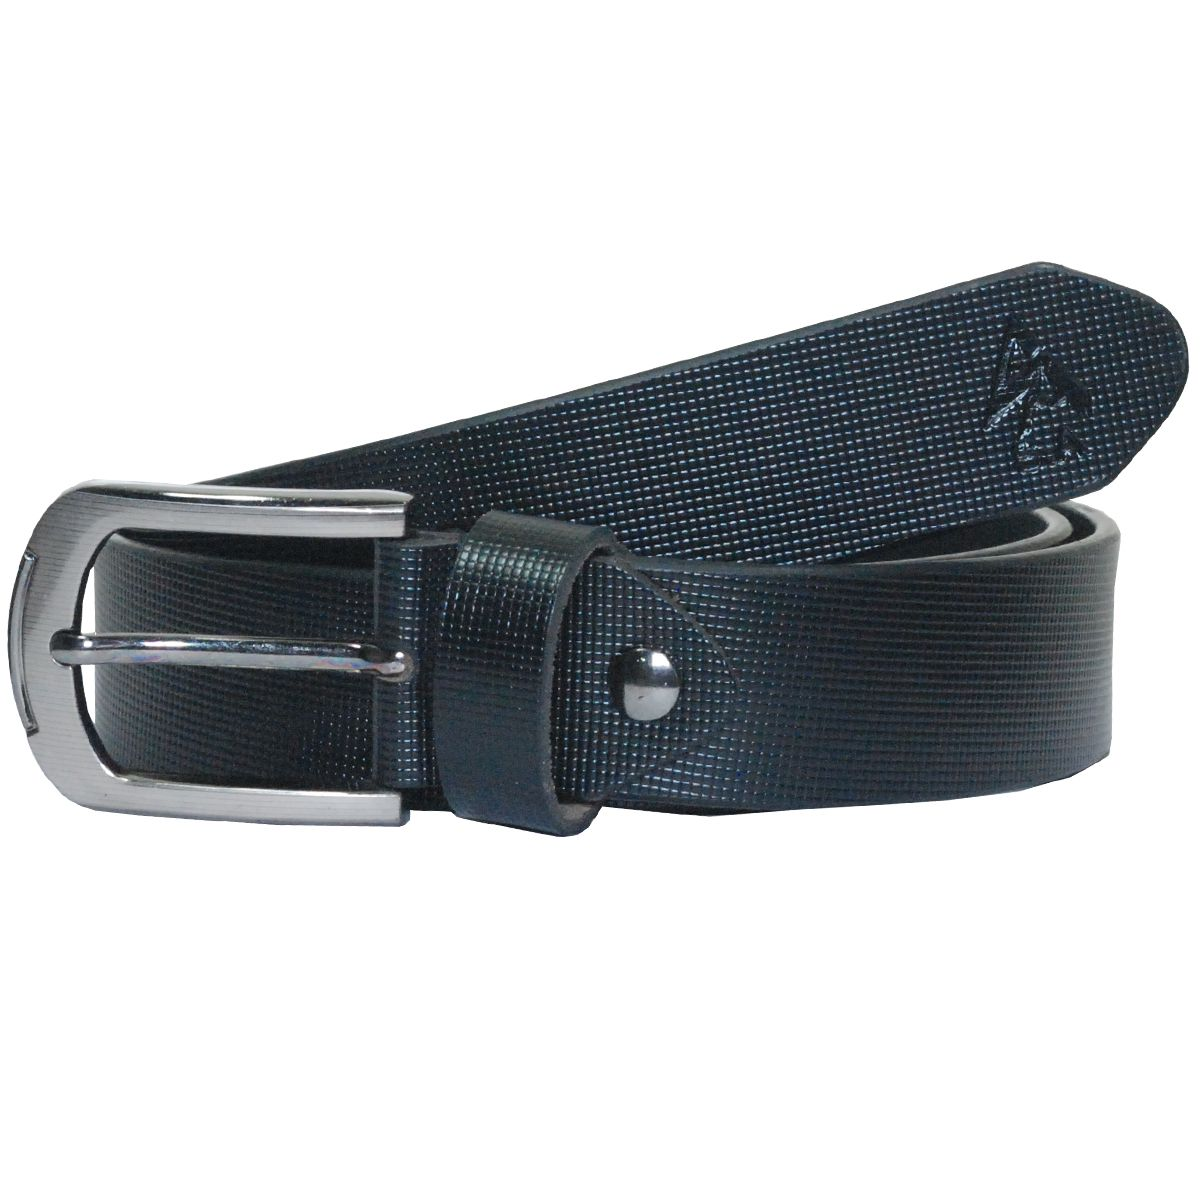 Sondagar Arts Black Leather Formal Belt